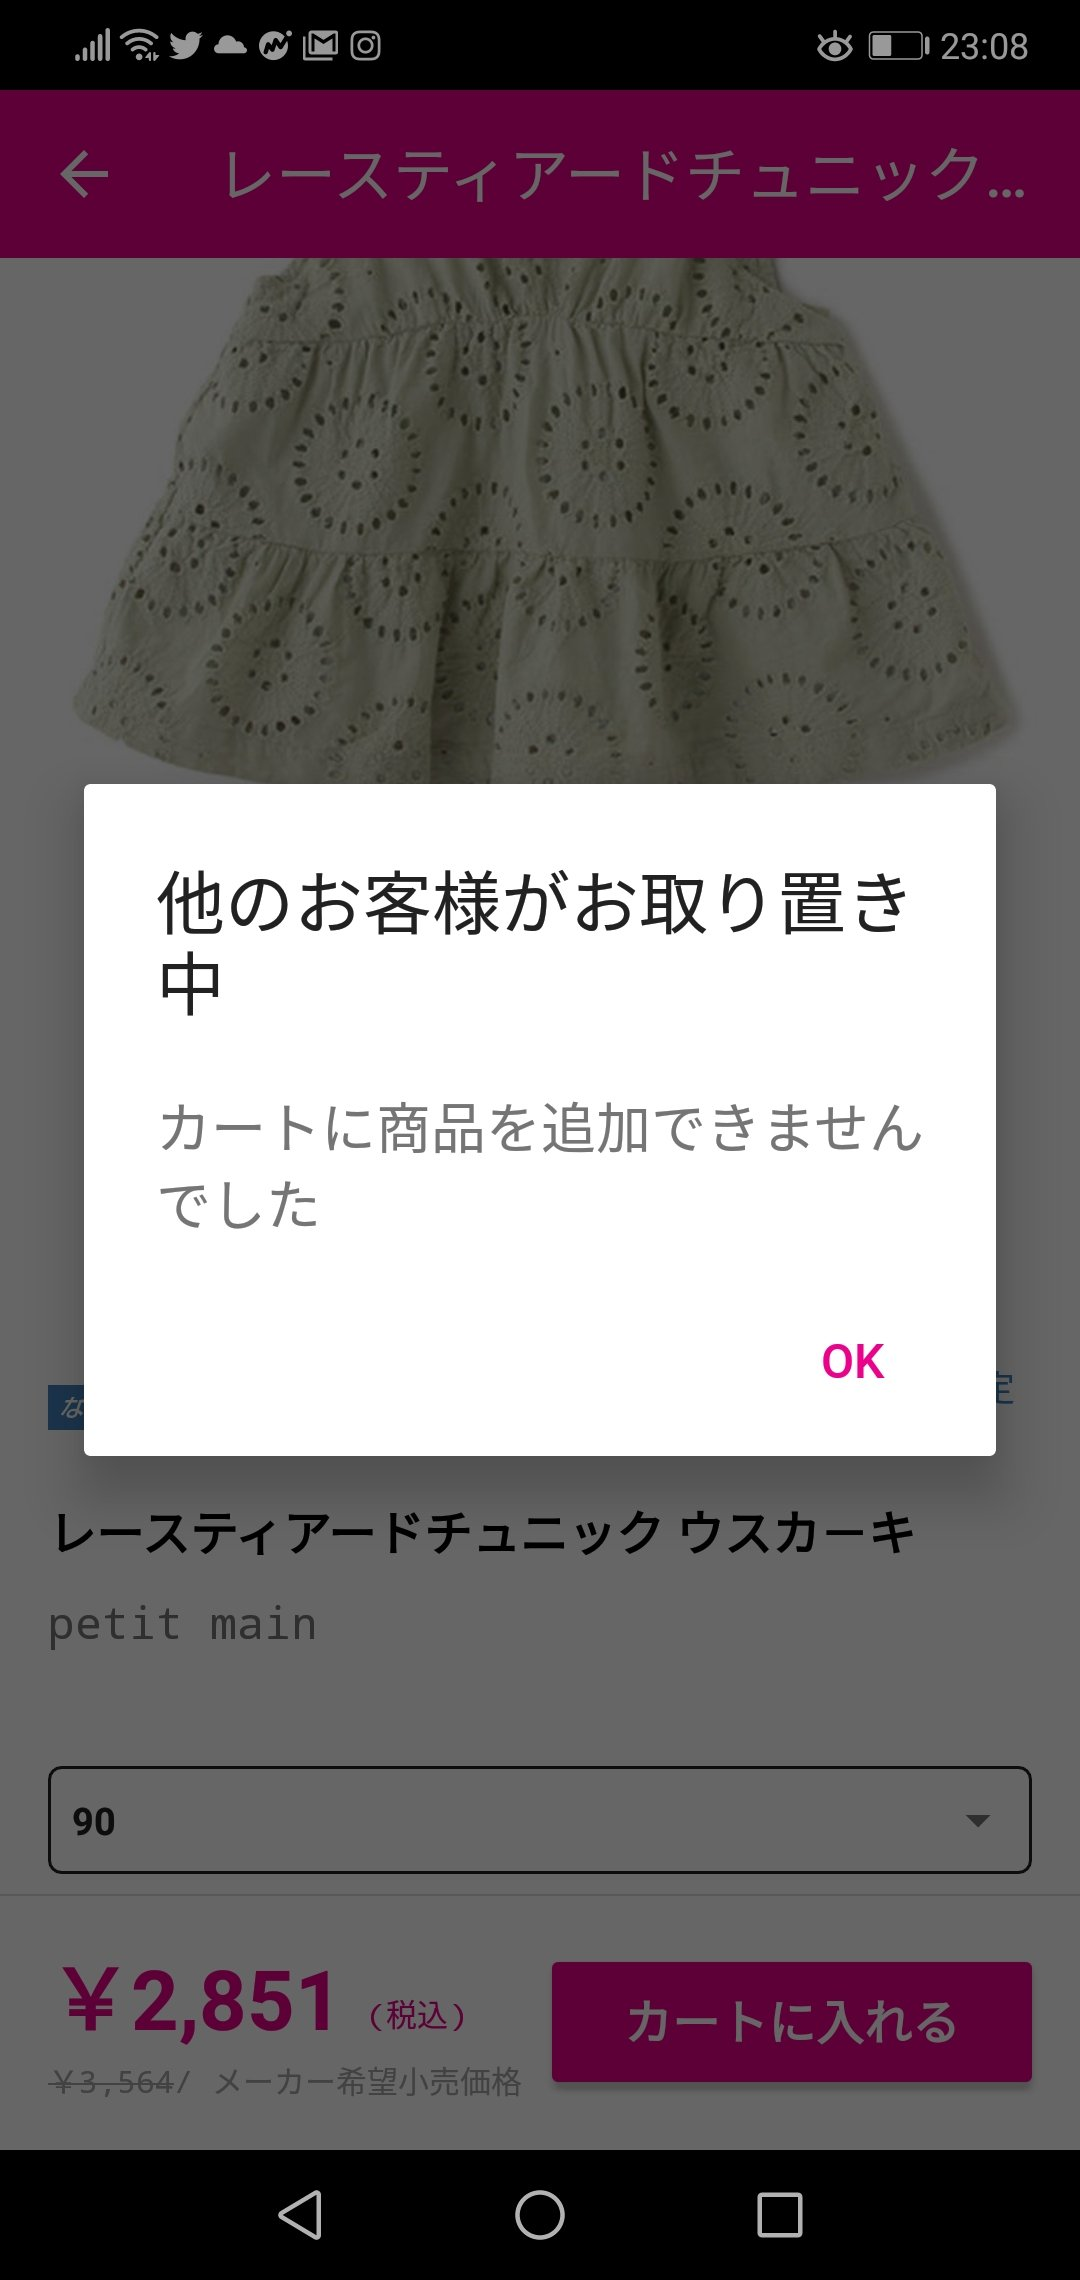 Smarbyの取り置き